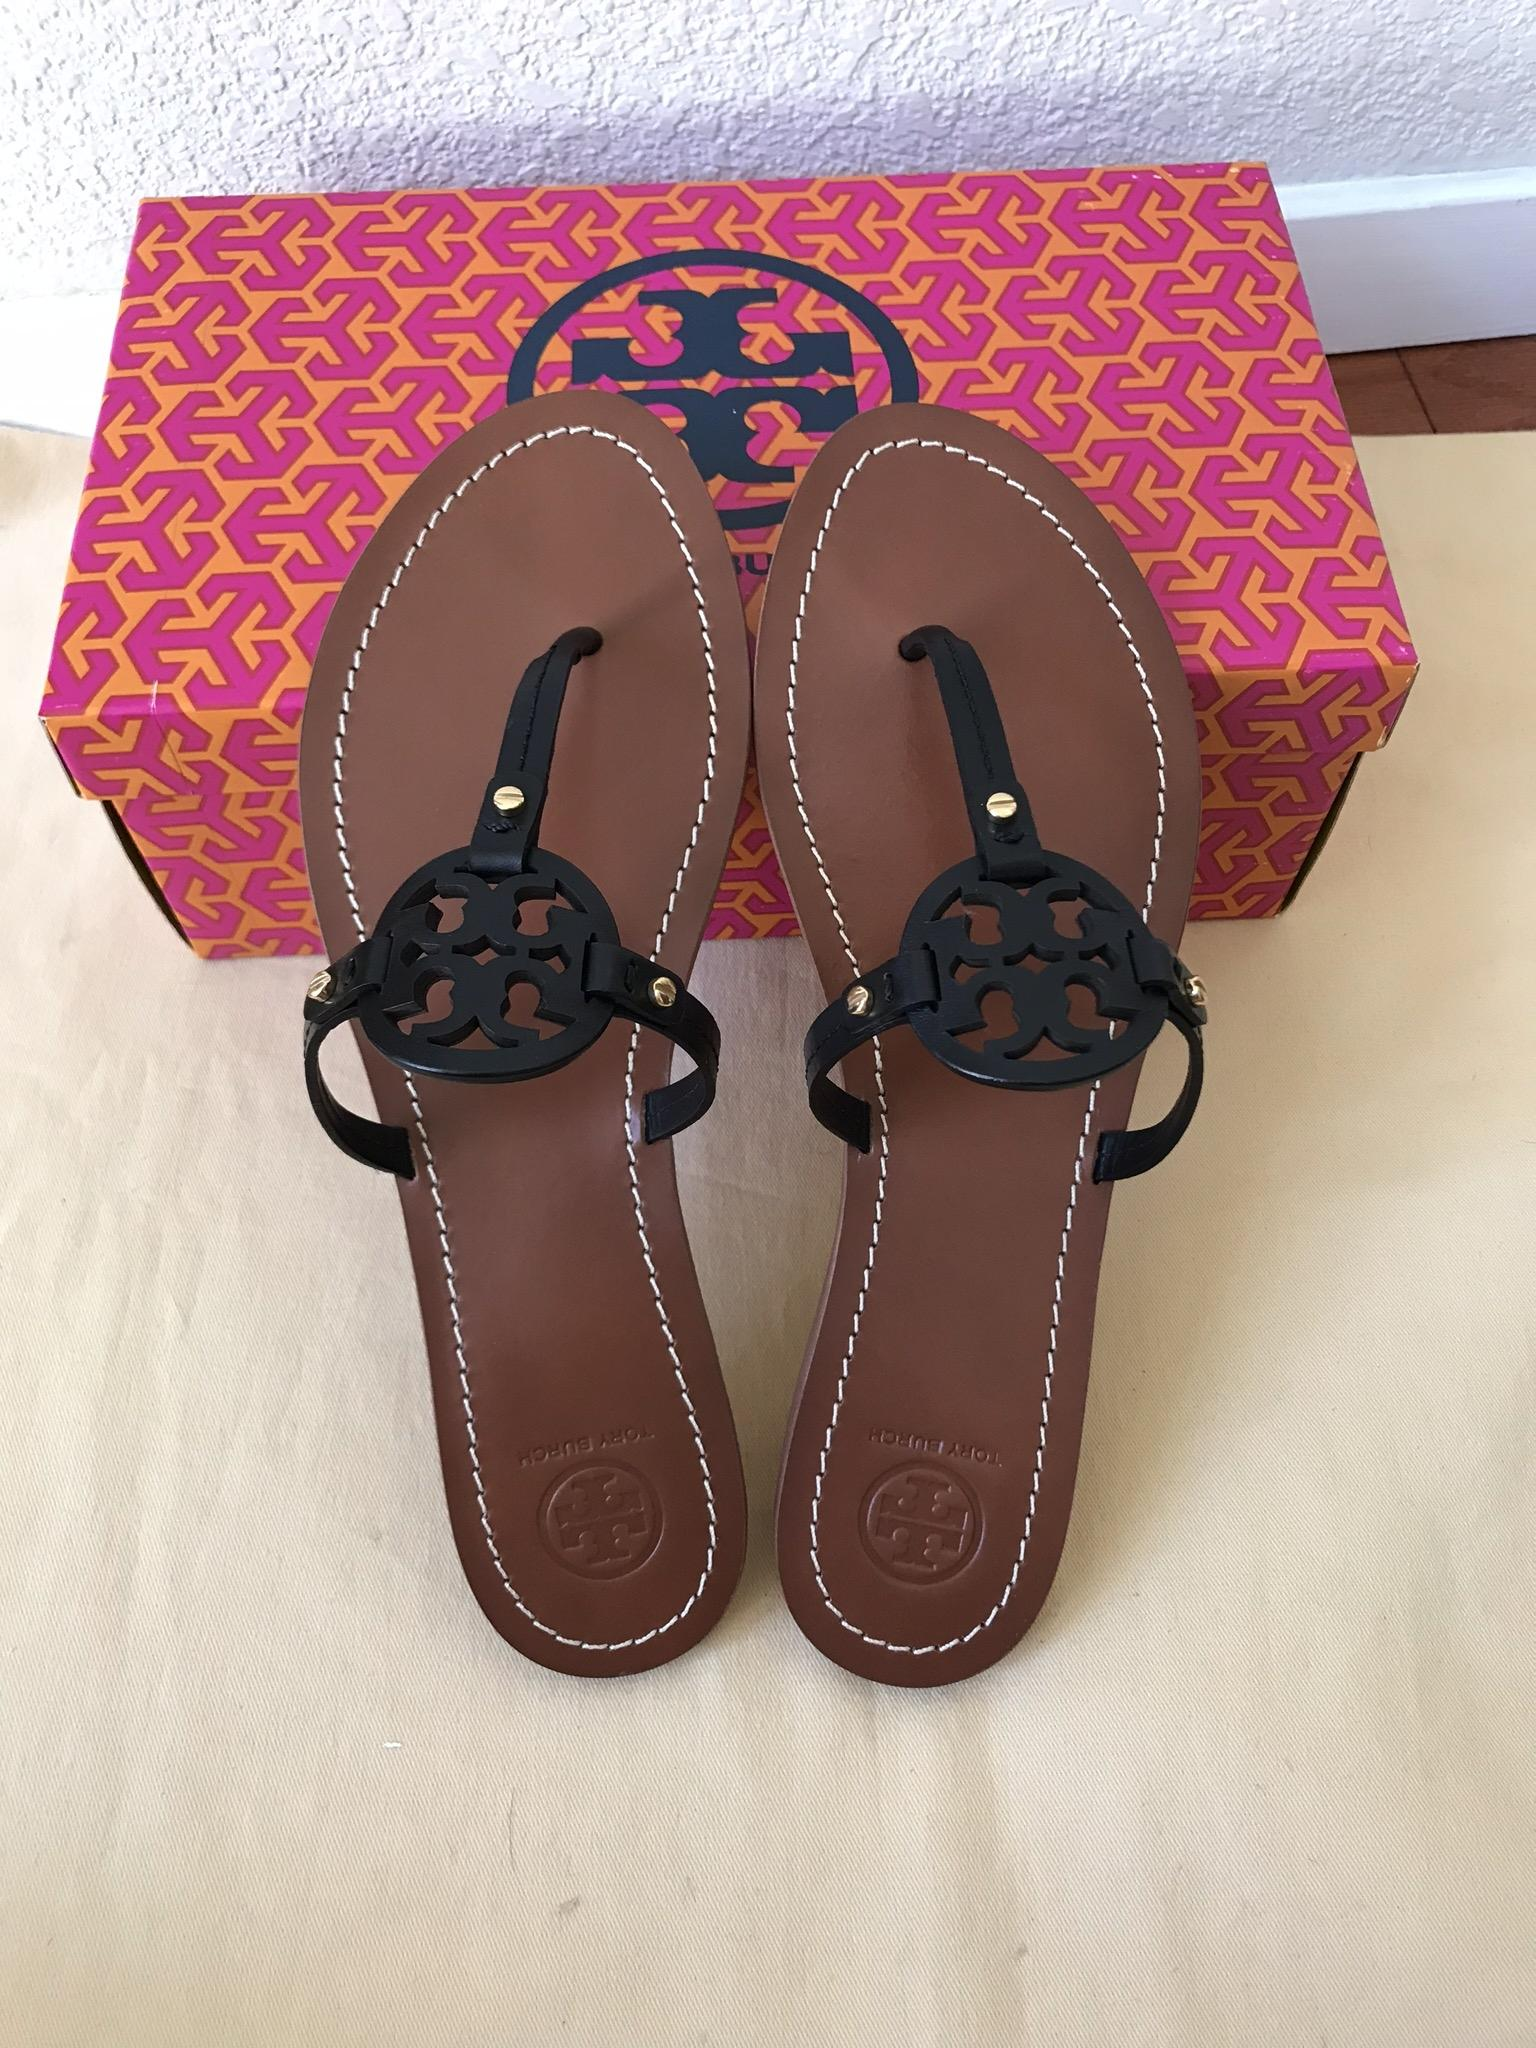 ffd8e90d6314 ... Tory Burch Black Mini Miller Flat Sandals Sandals Sandals Size US 8  Regular (M